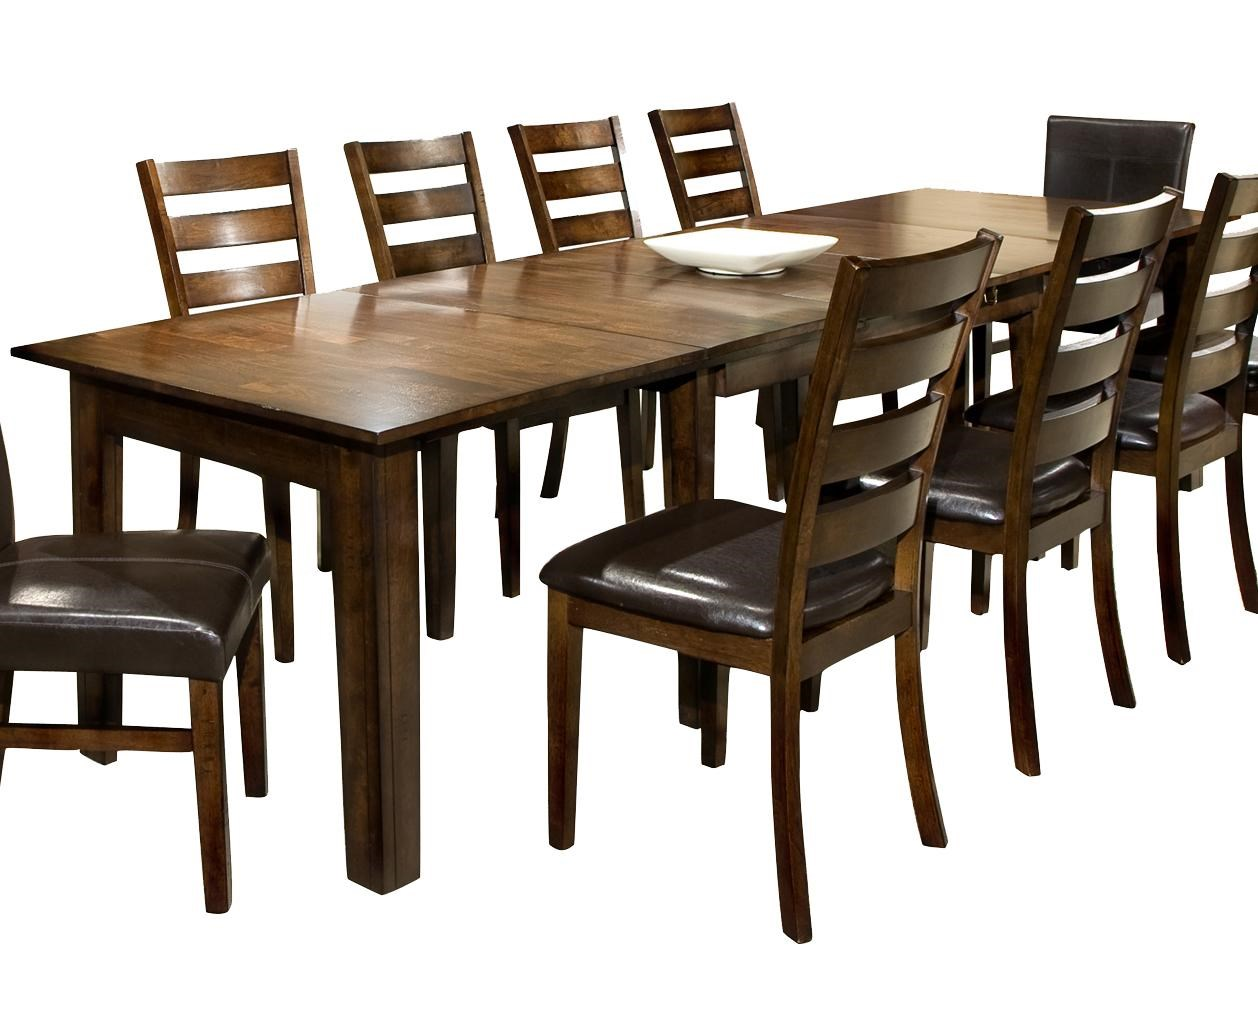 intercon furniture kona dining table images